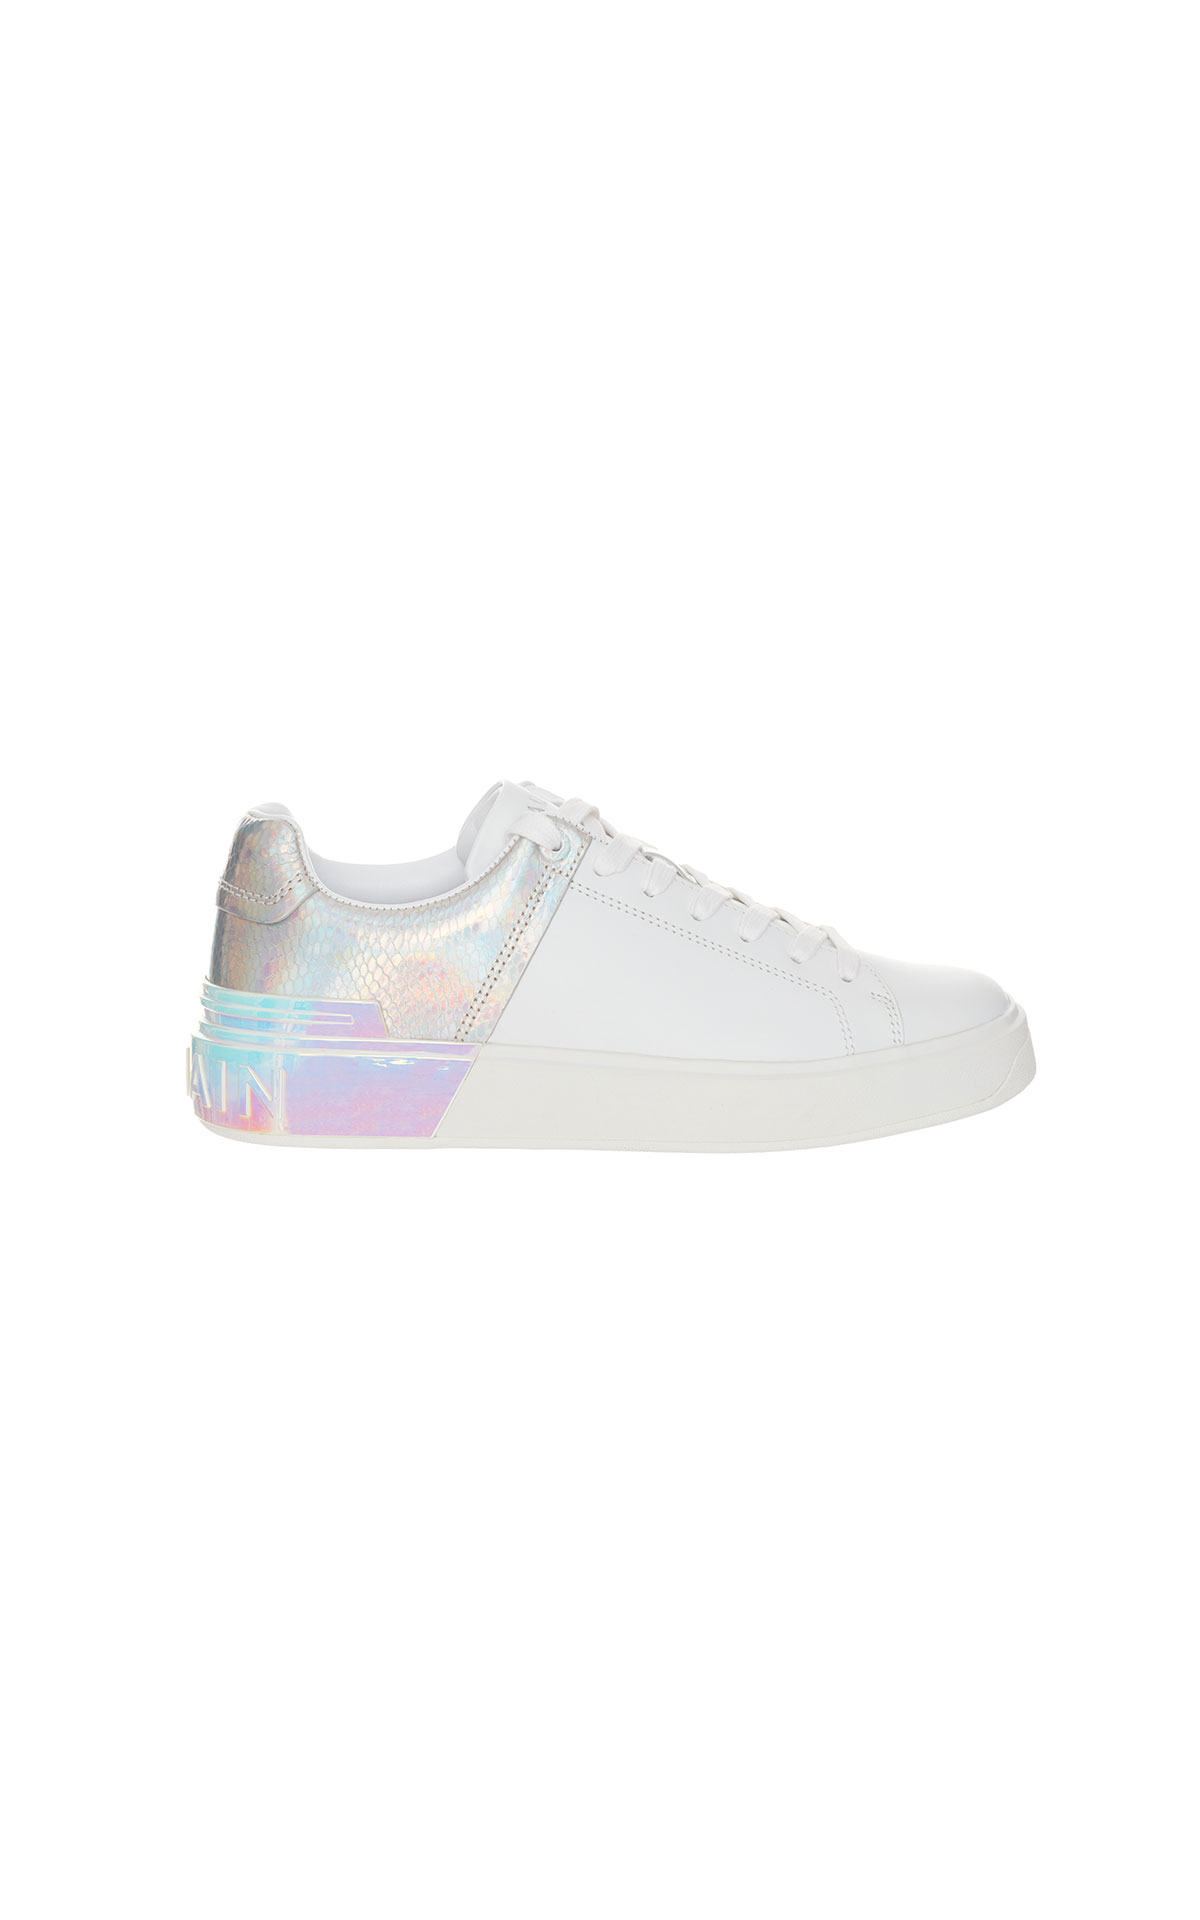 Balmain Low top sneakers from Bicester Village